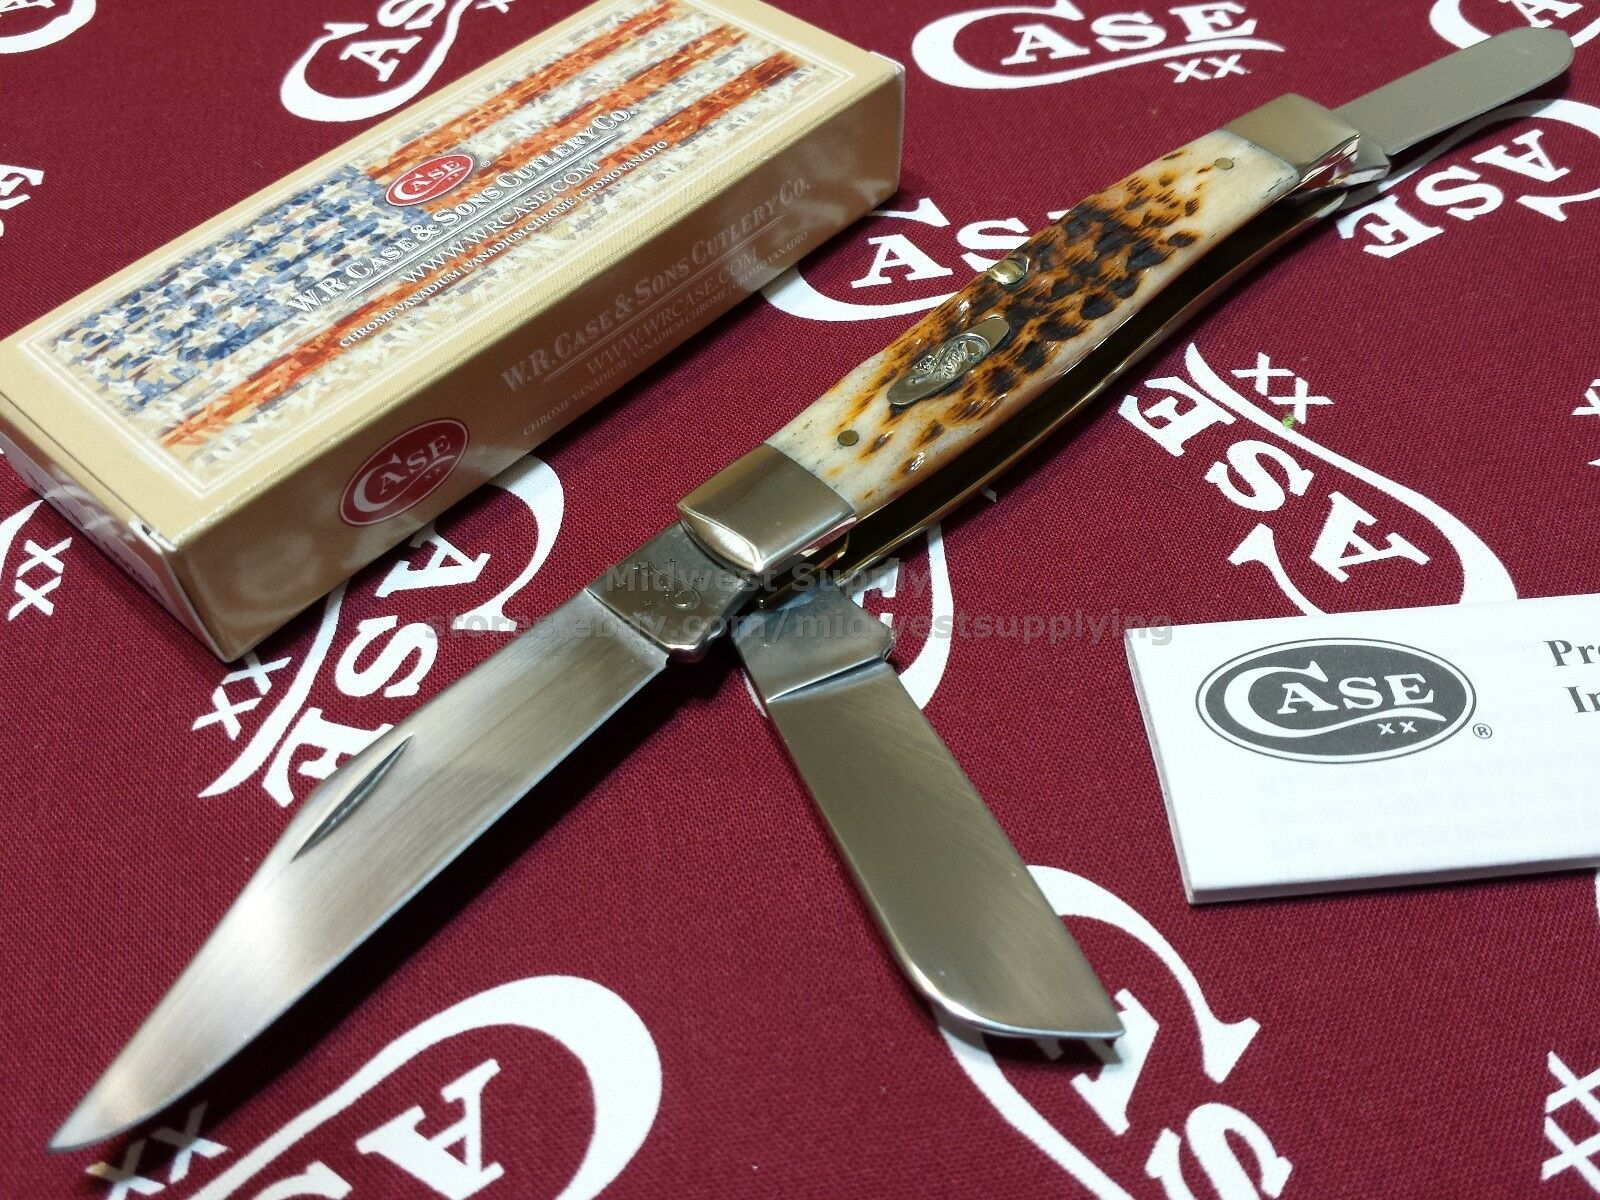 case xx knife 204 amber bone cv large stockman folding